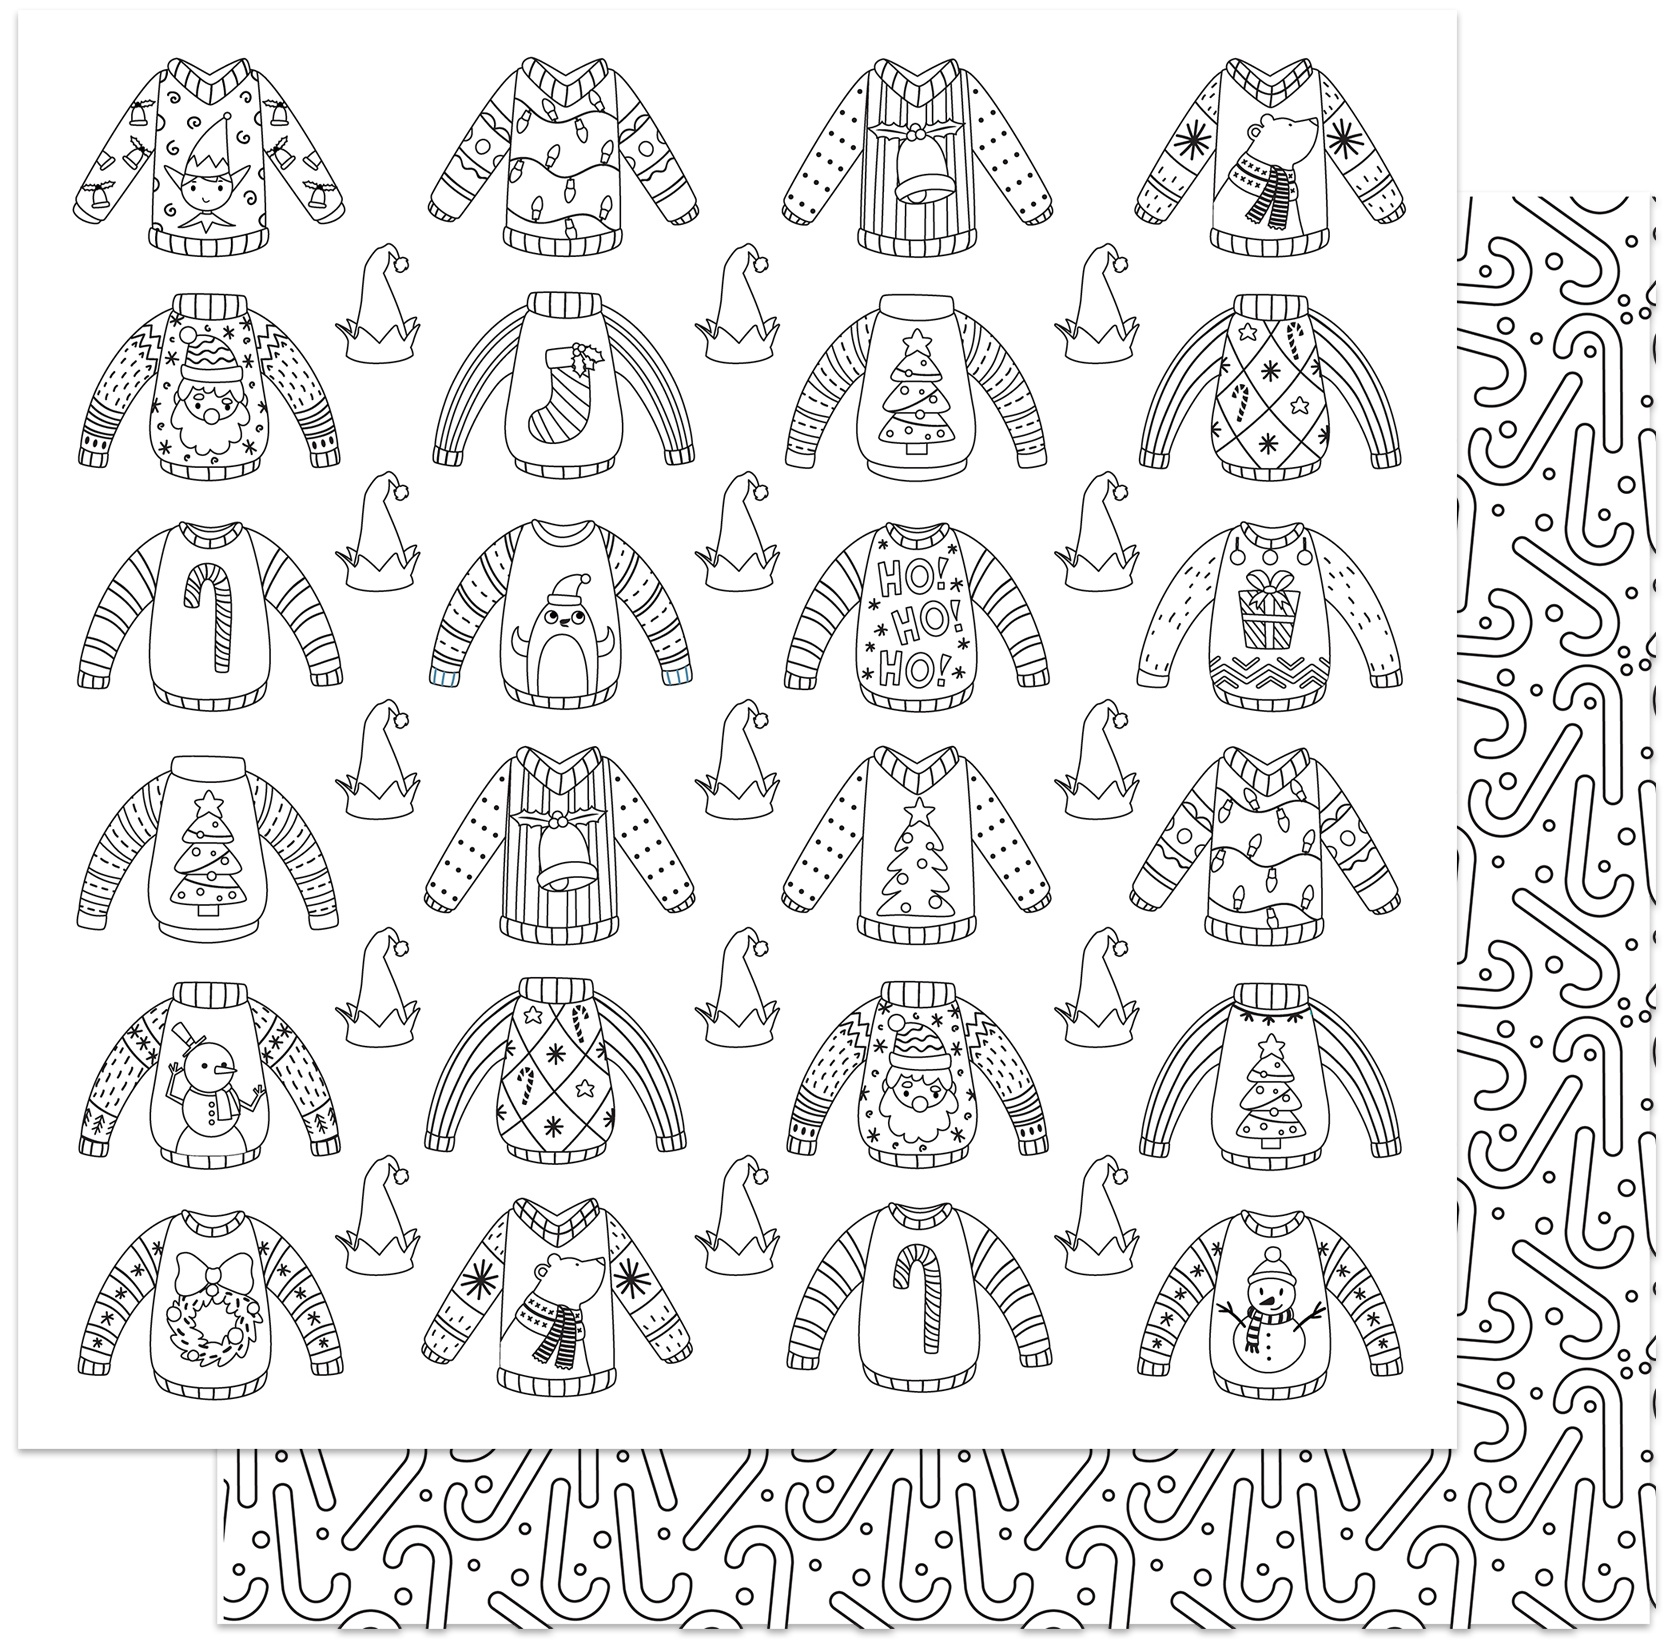 Tulla & Norbert's Christmas Party - Ugly Sweater Color Me Paper